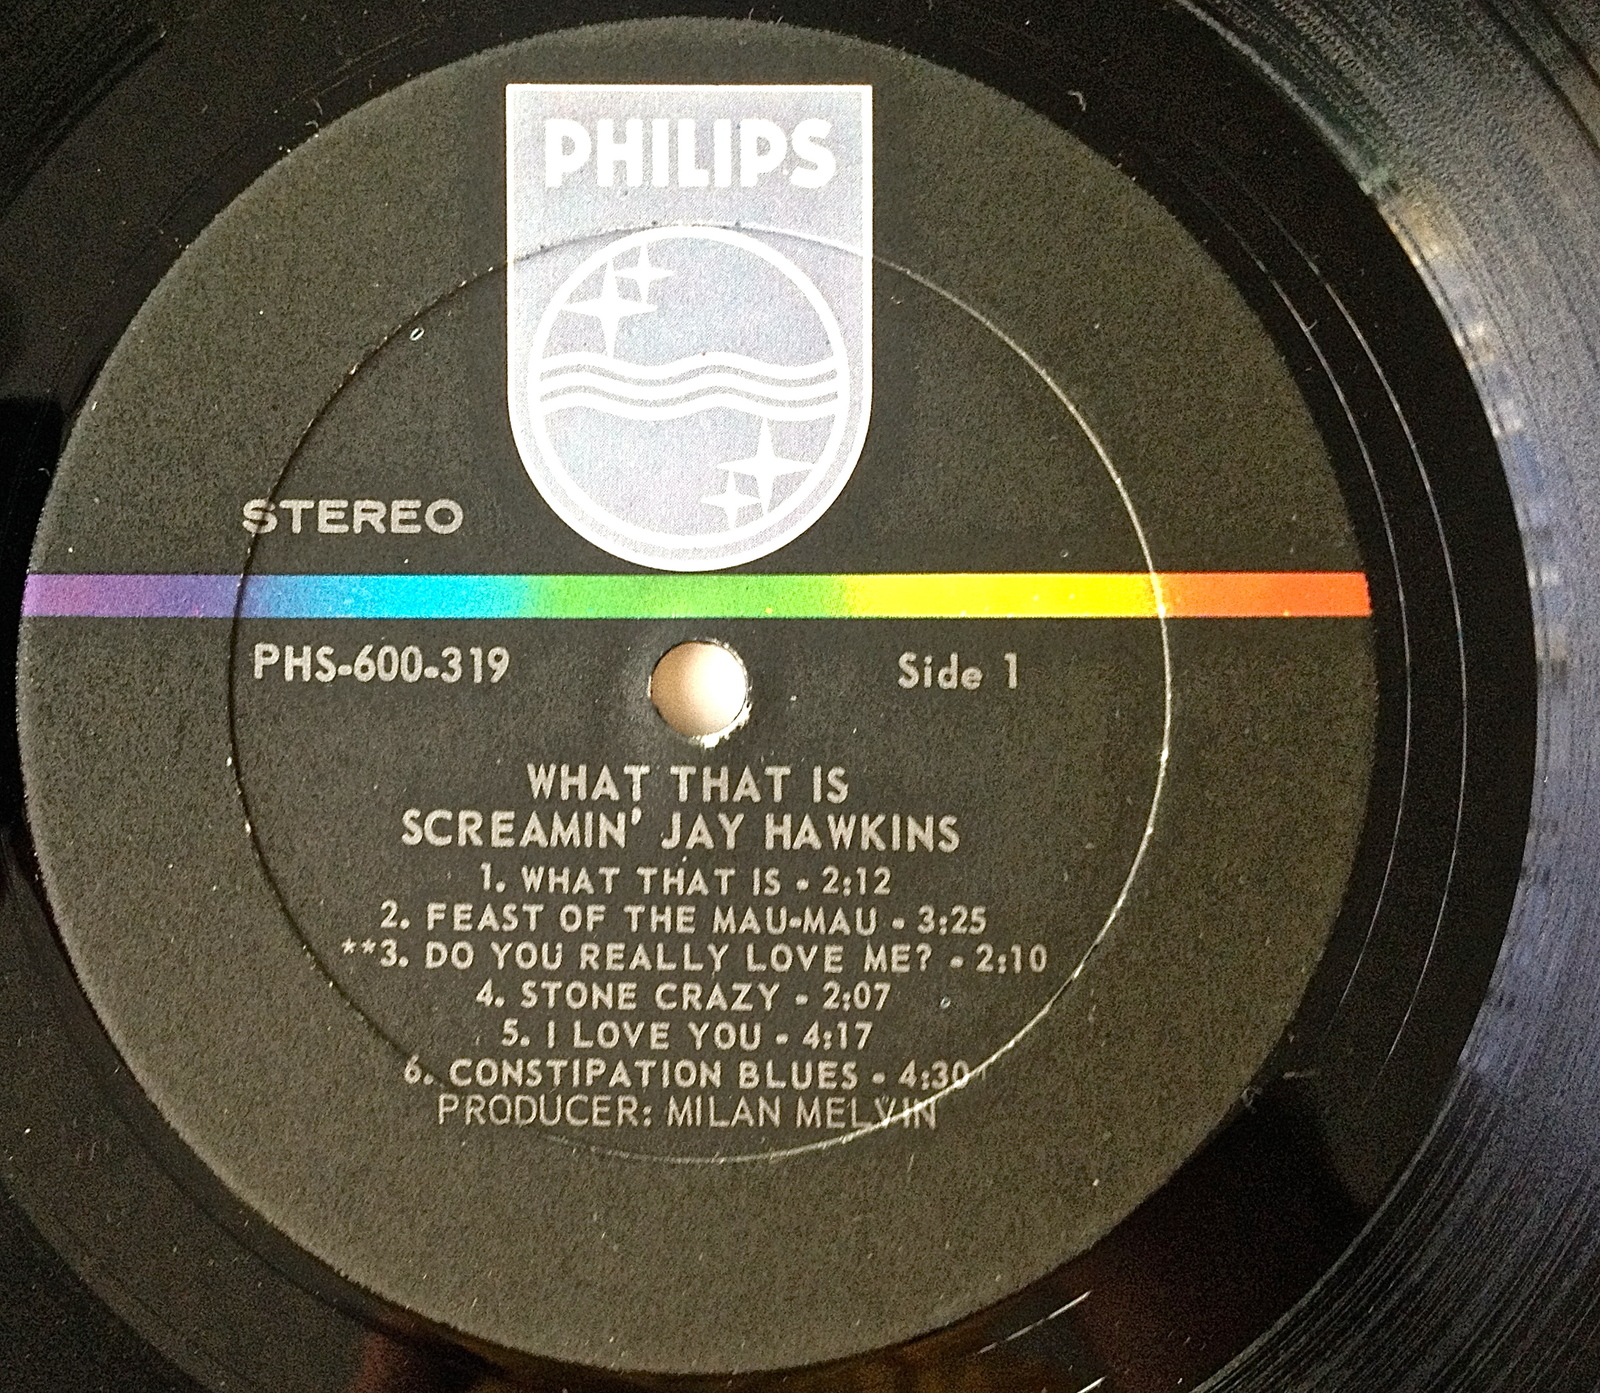 Screamin' Jay Hawkins - What That Is! LP Vinyl Record Album, Philips-PHS 600-319